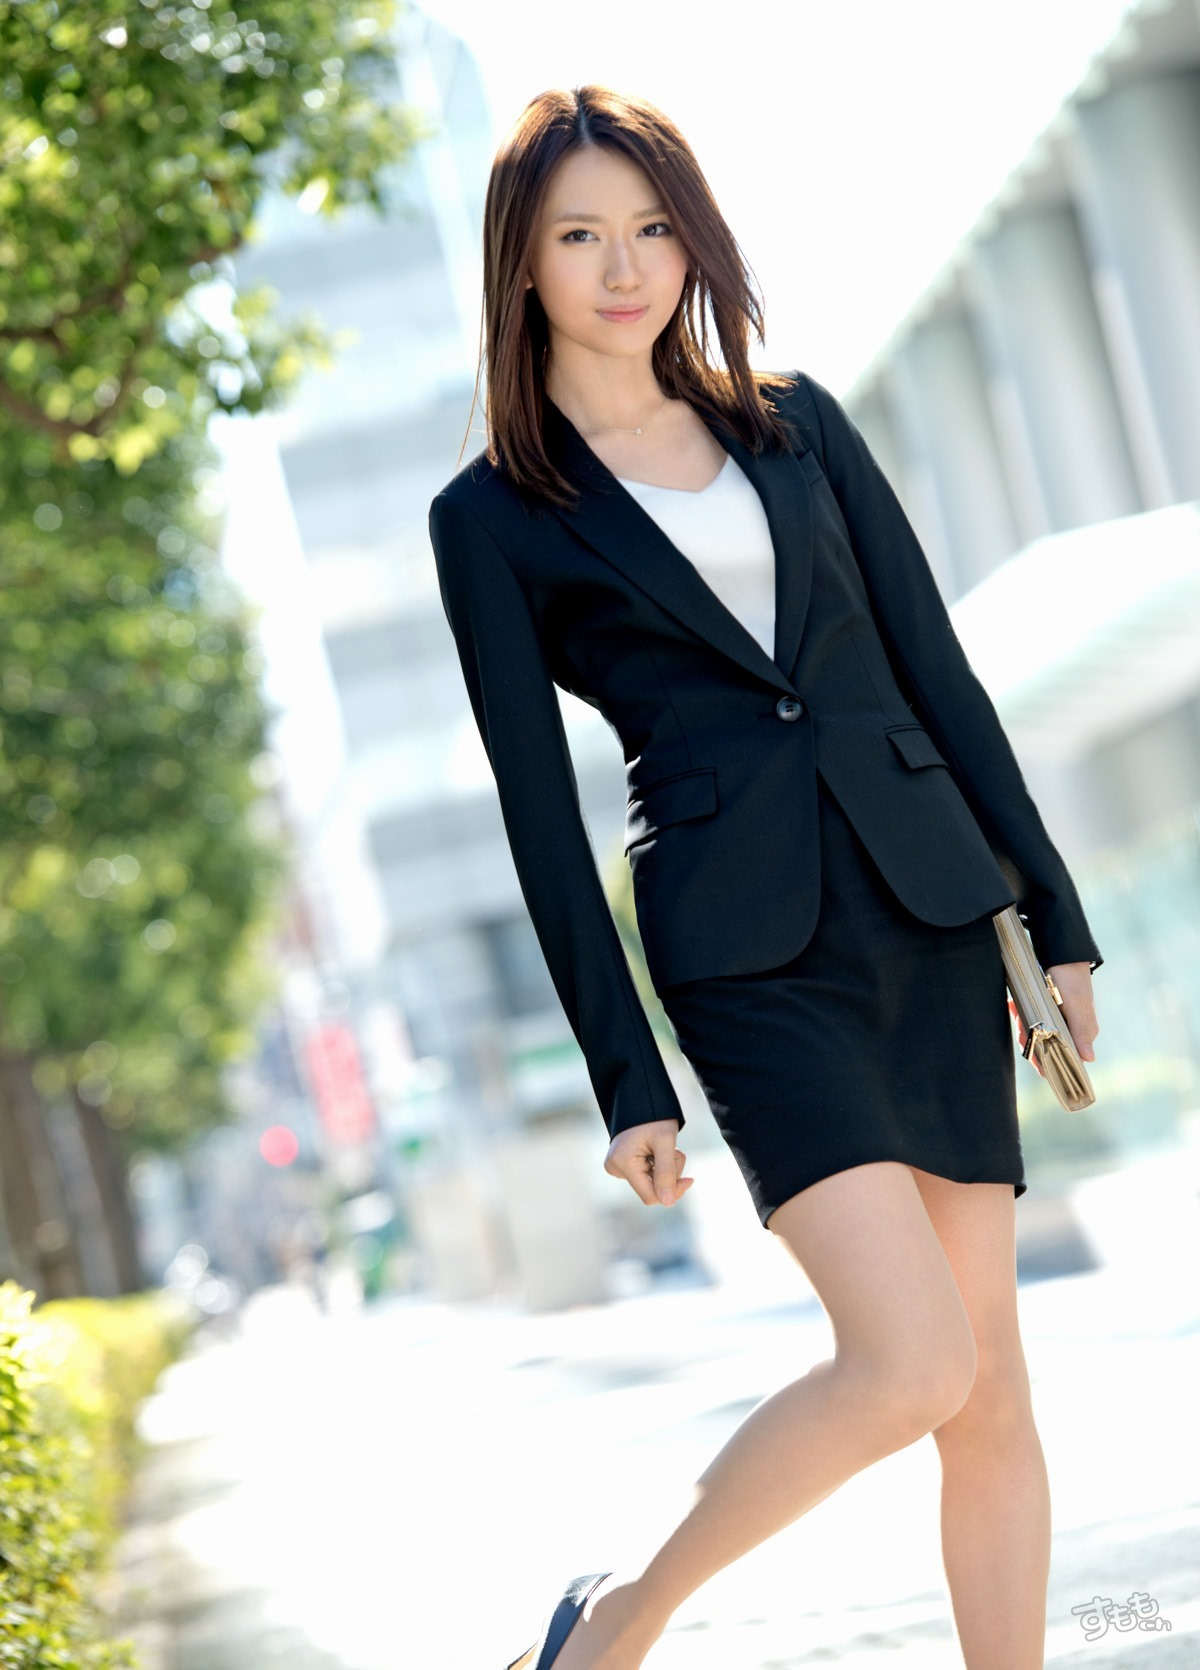 tight_skirt_5748-025